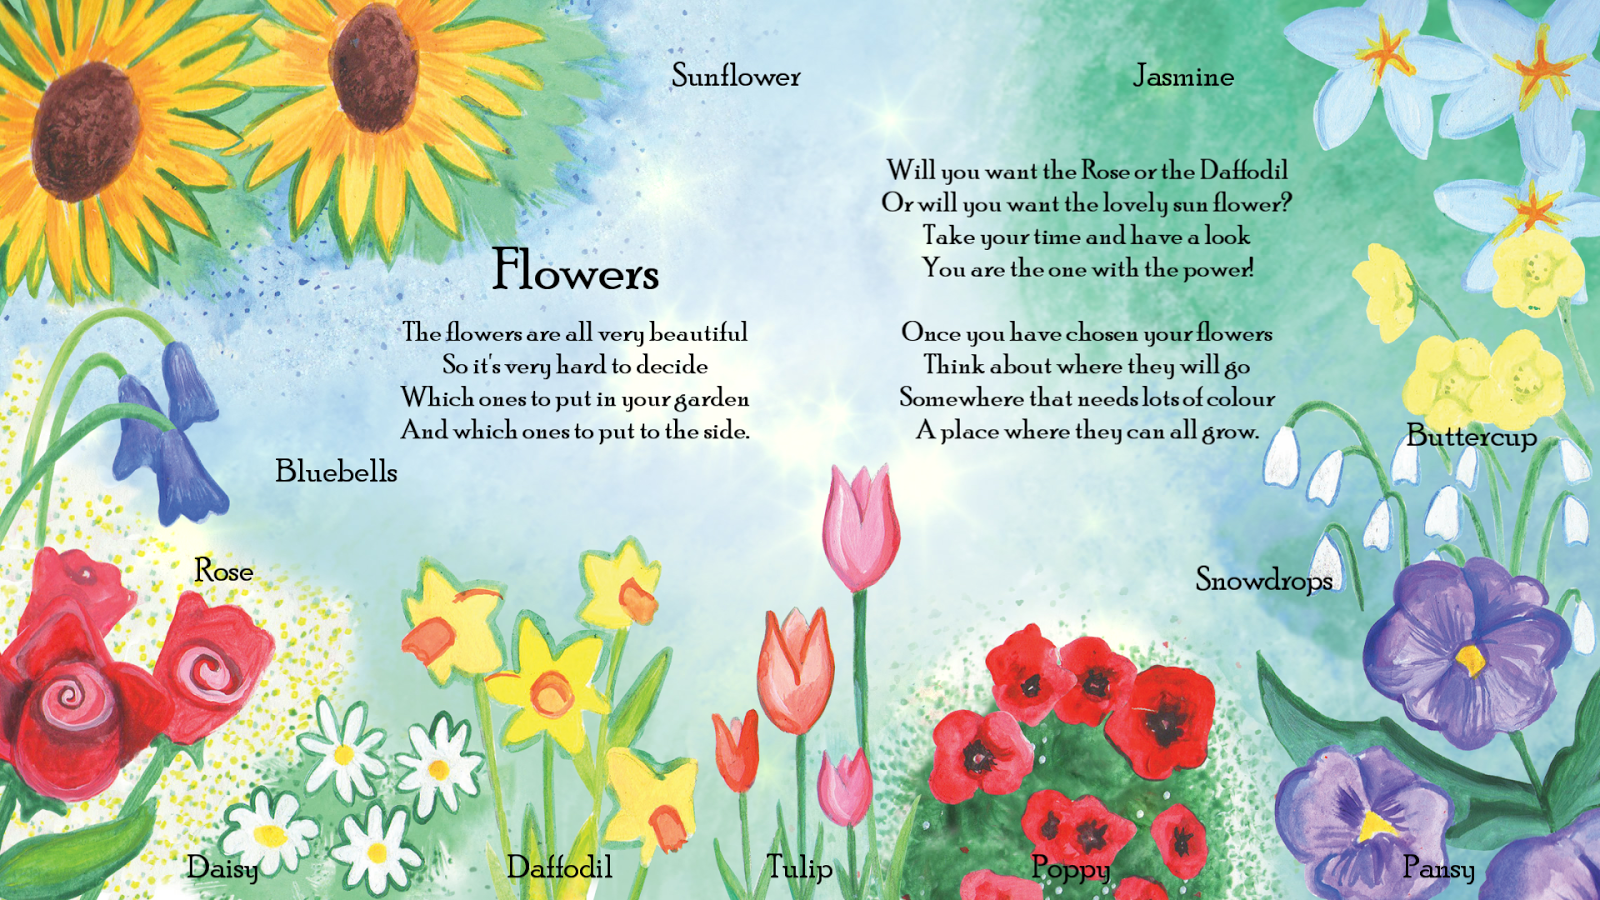 My Magical Garden Android Apps on Google Play